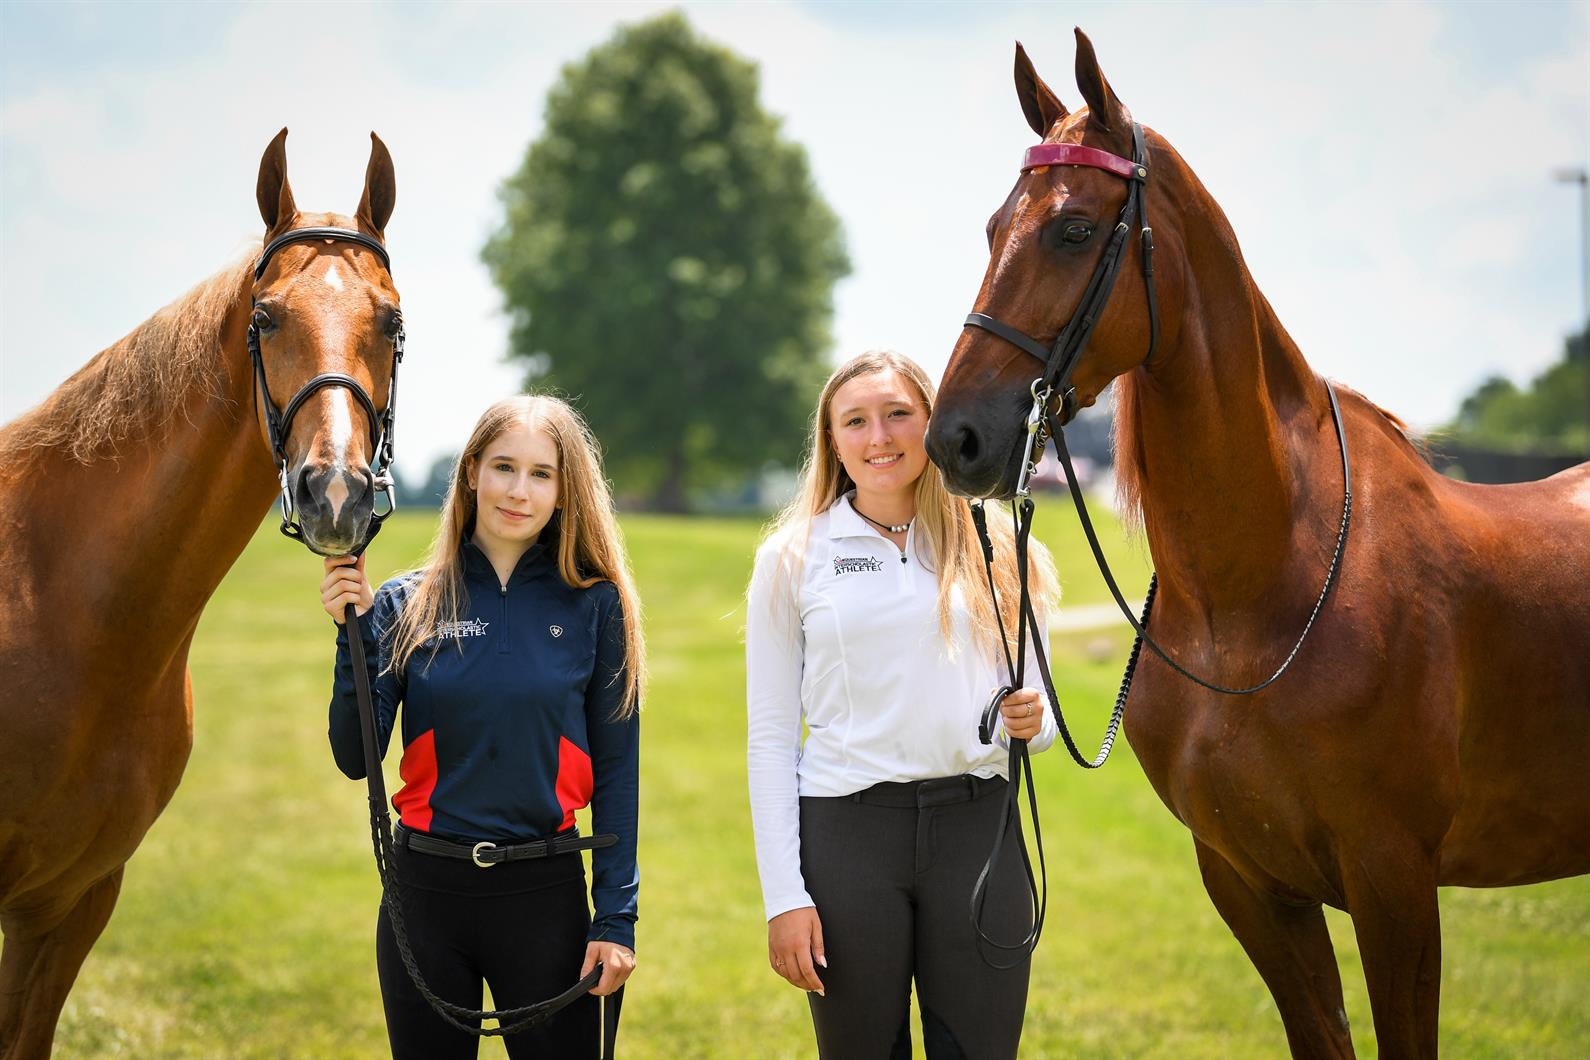 Two interscholastic equestrians posing with Saddlebred horses